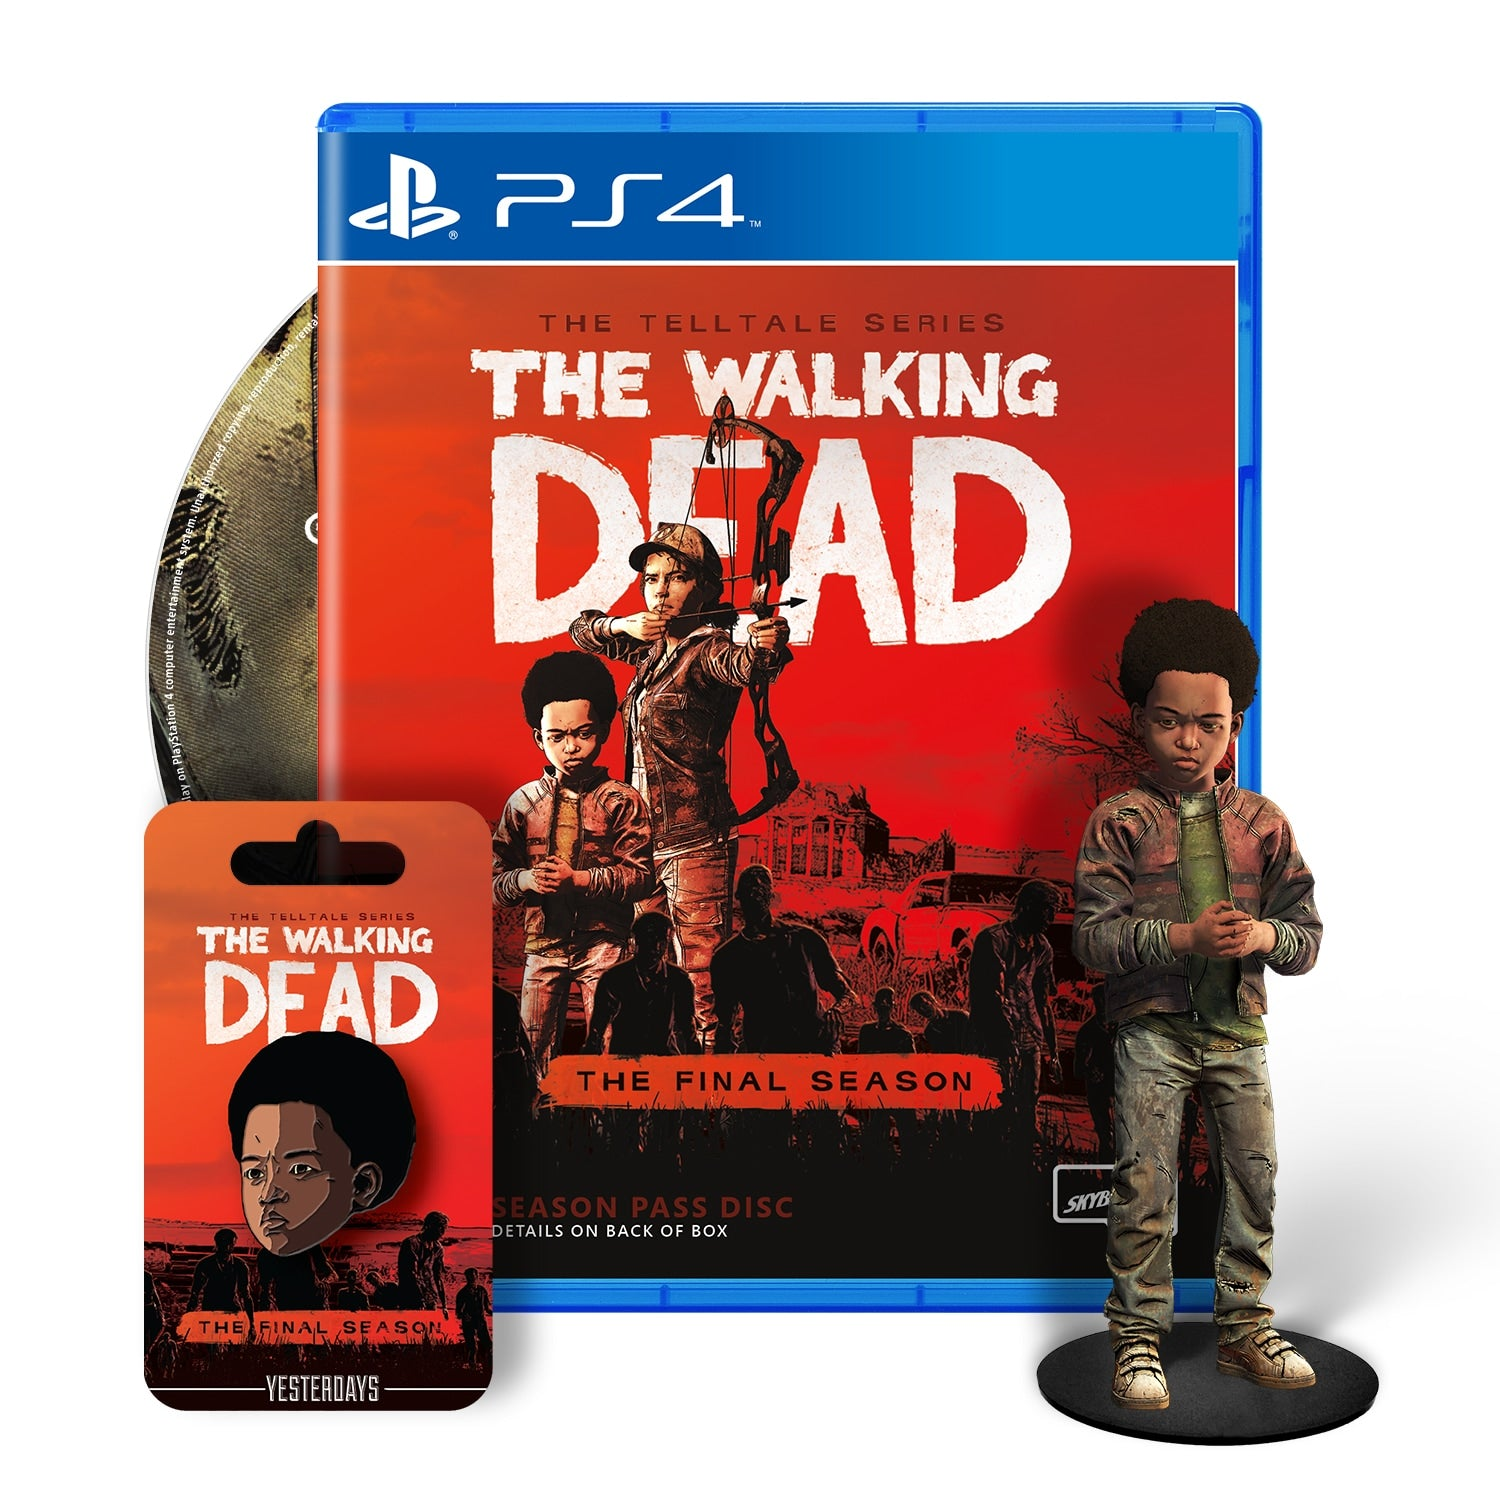 tttwd-collector-pack-ps4_1500x1500.jpg?v